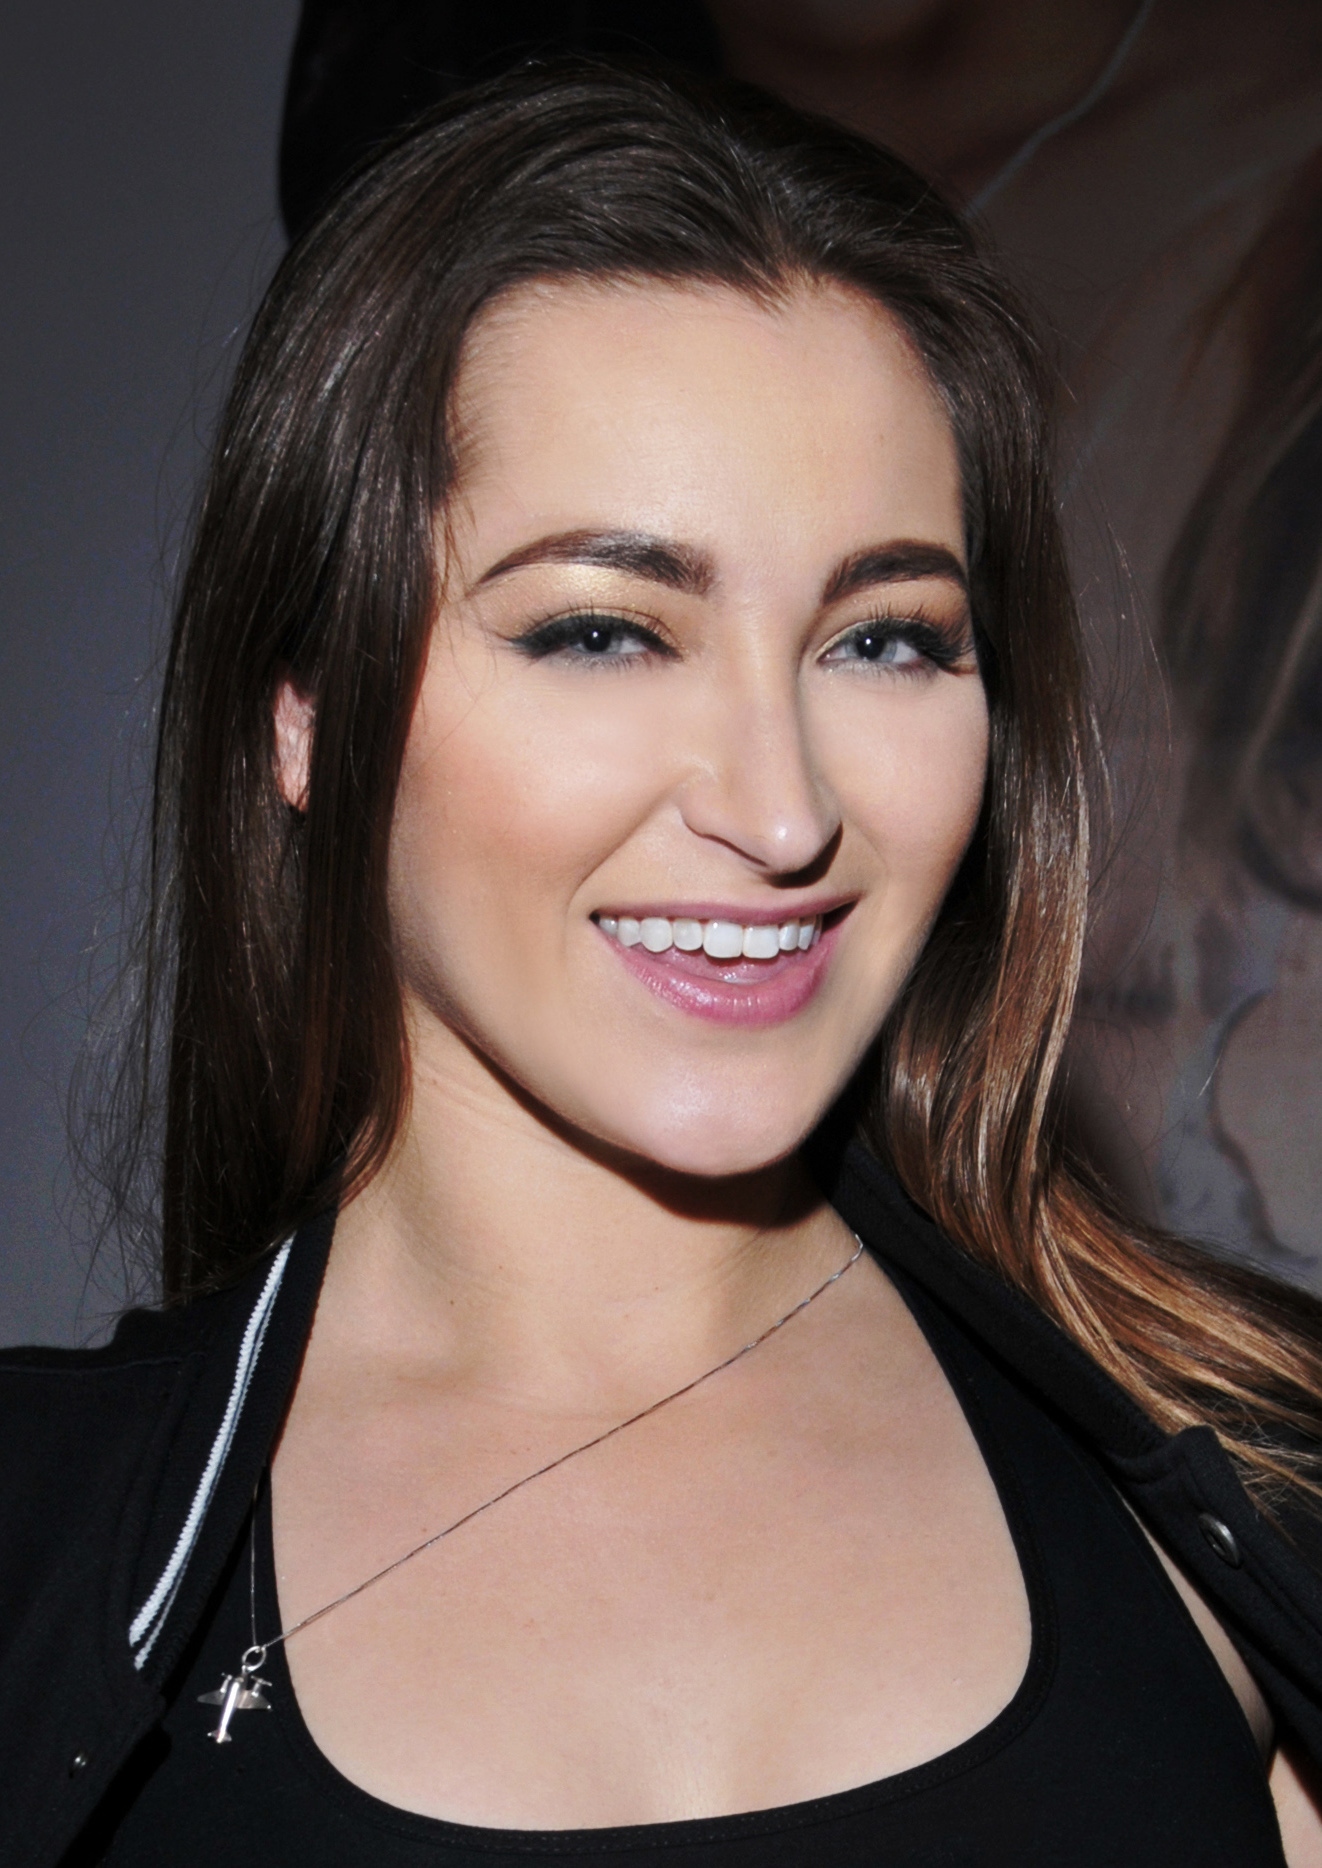 Dani Daniels Nude Photos 2